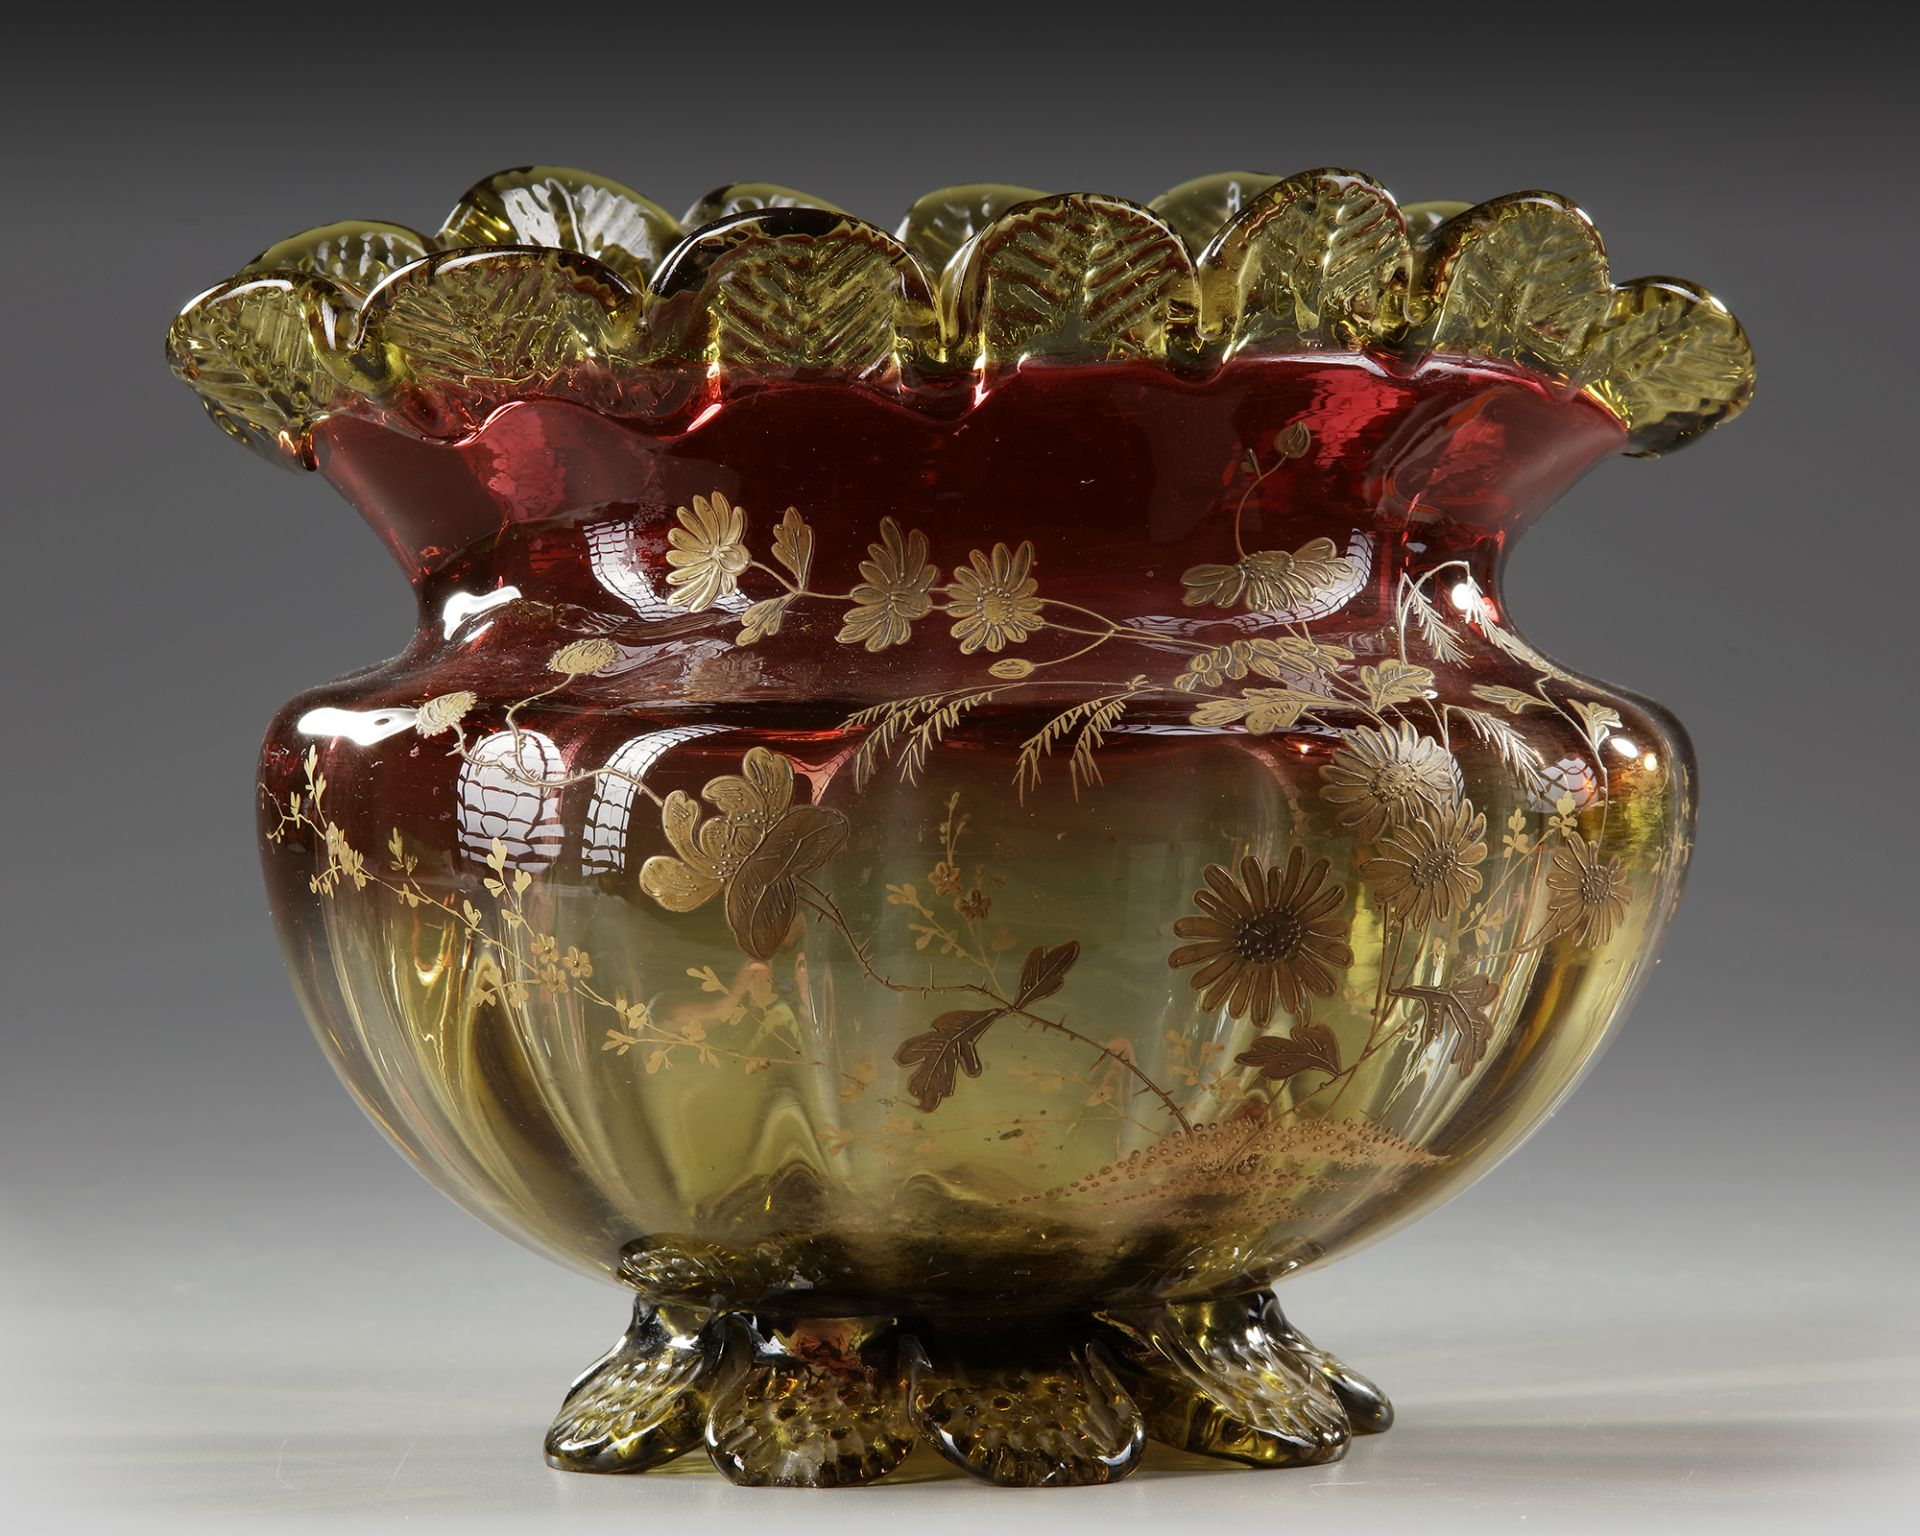 A BLOWN GLASS BOWL, 'LE GRAS', LATE 19TH CENTURY